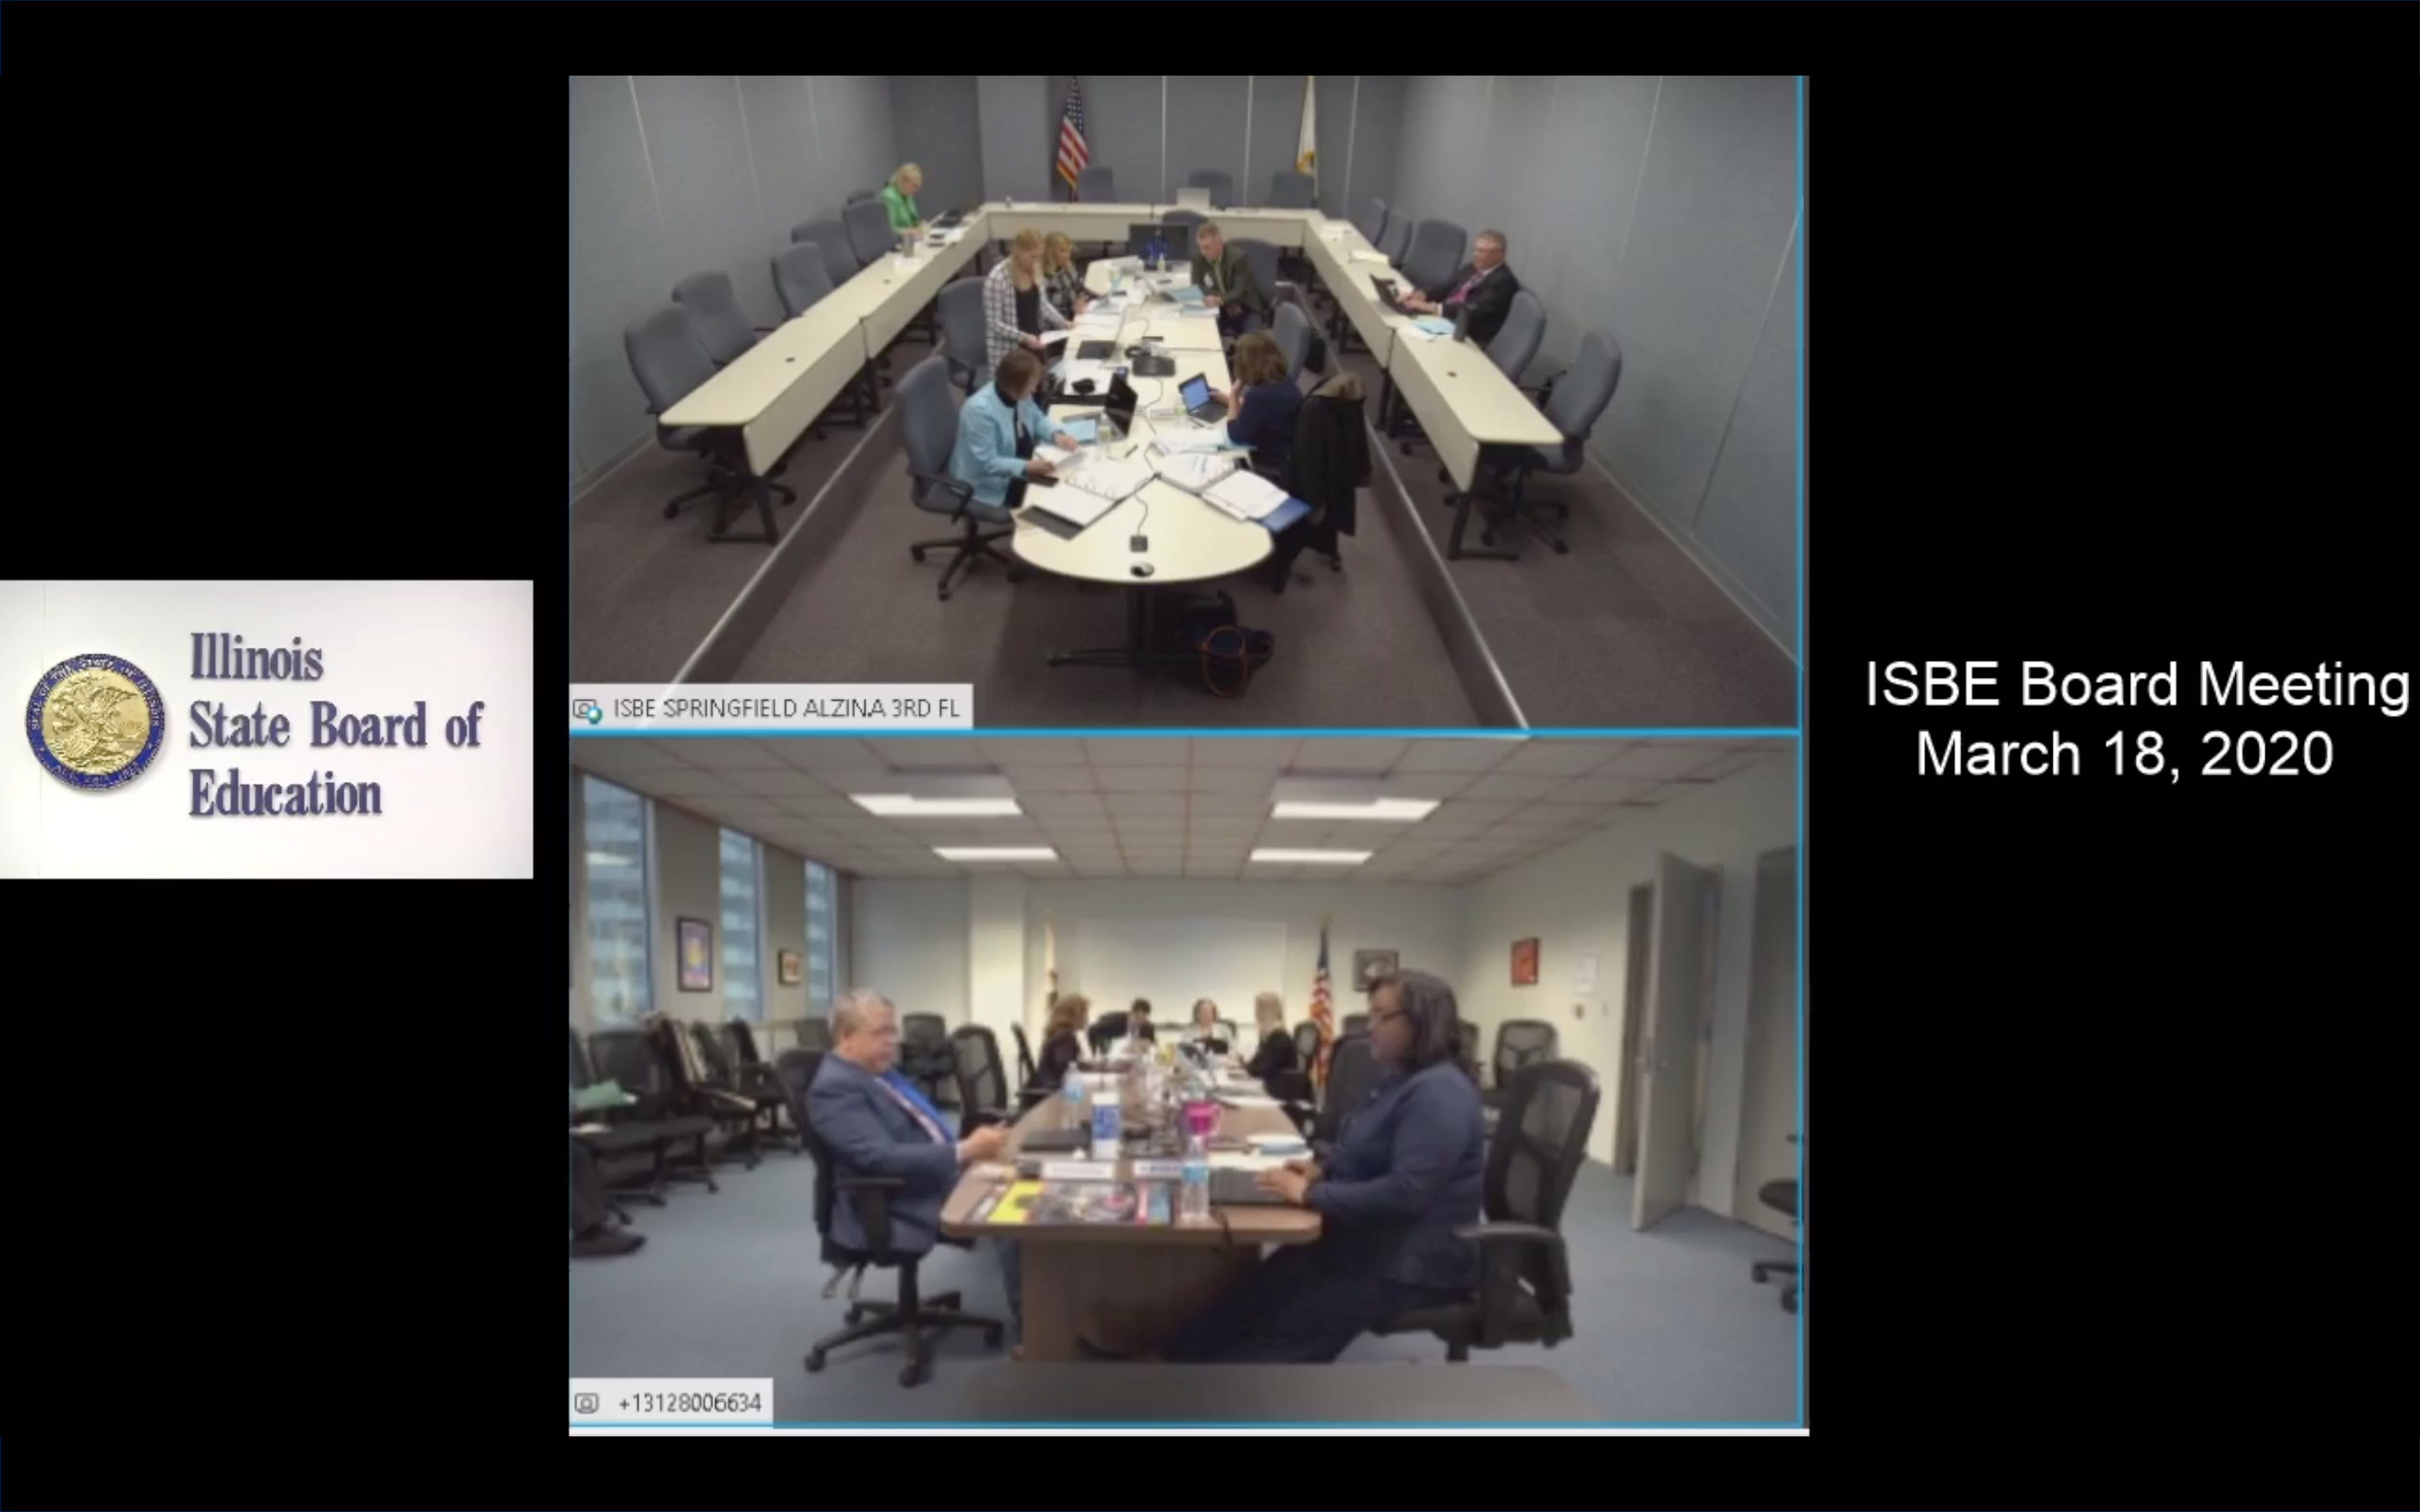 The Illinois State Board of Education met in person, with some people calling in, on Wednesday.